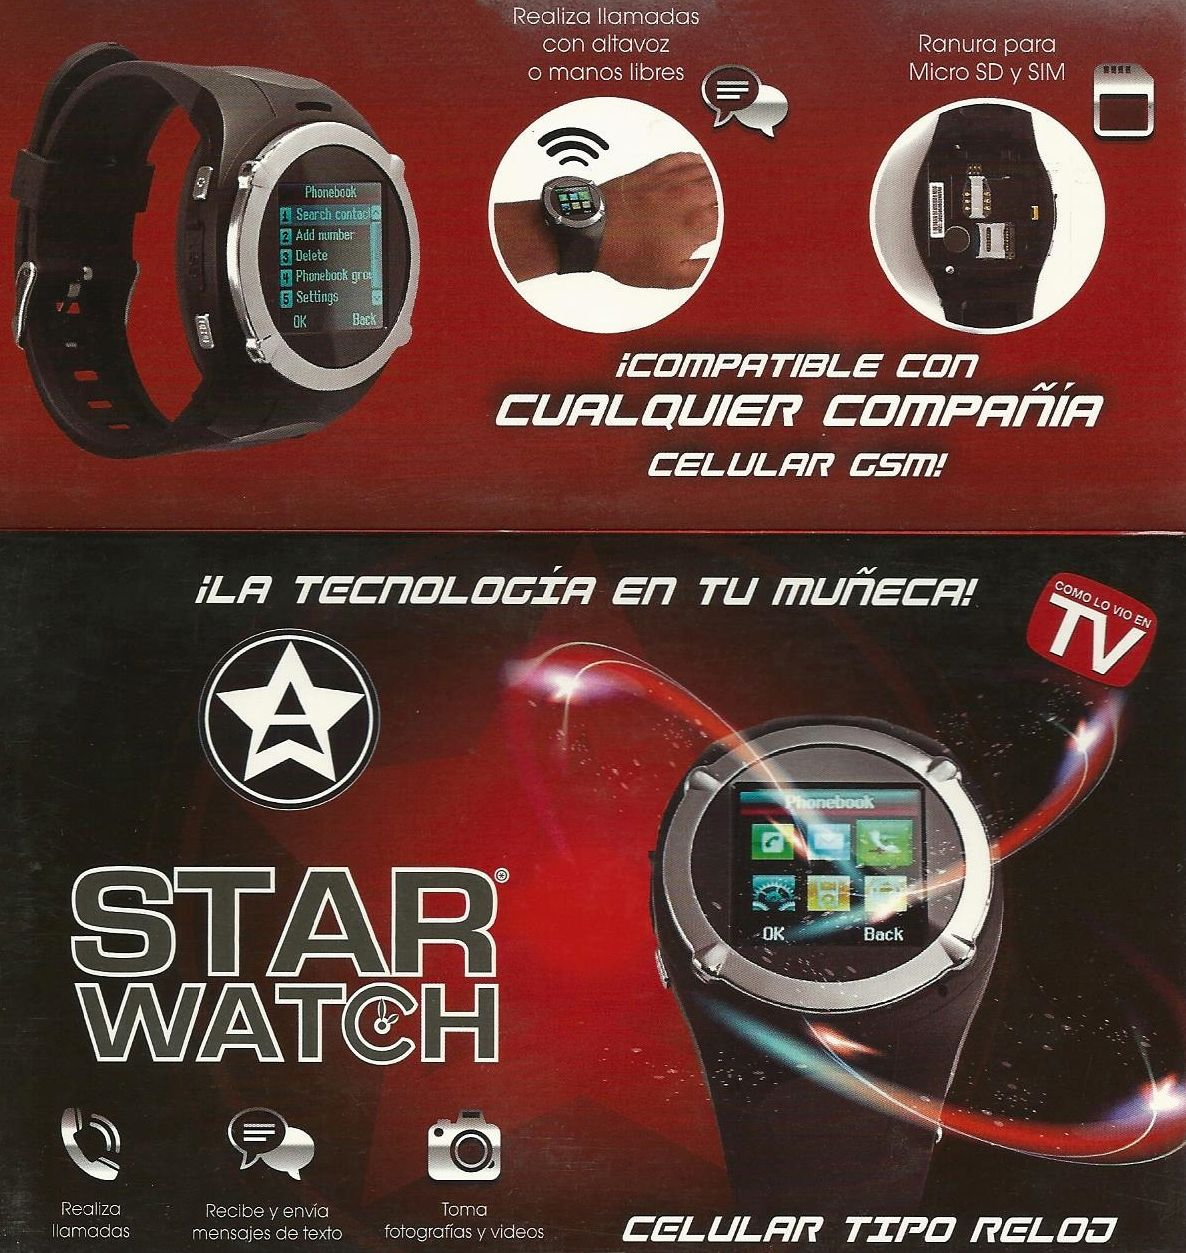 starwatch star watch reloj celular